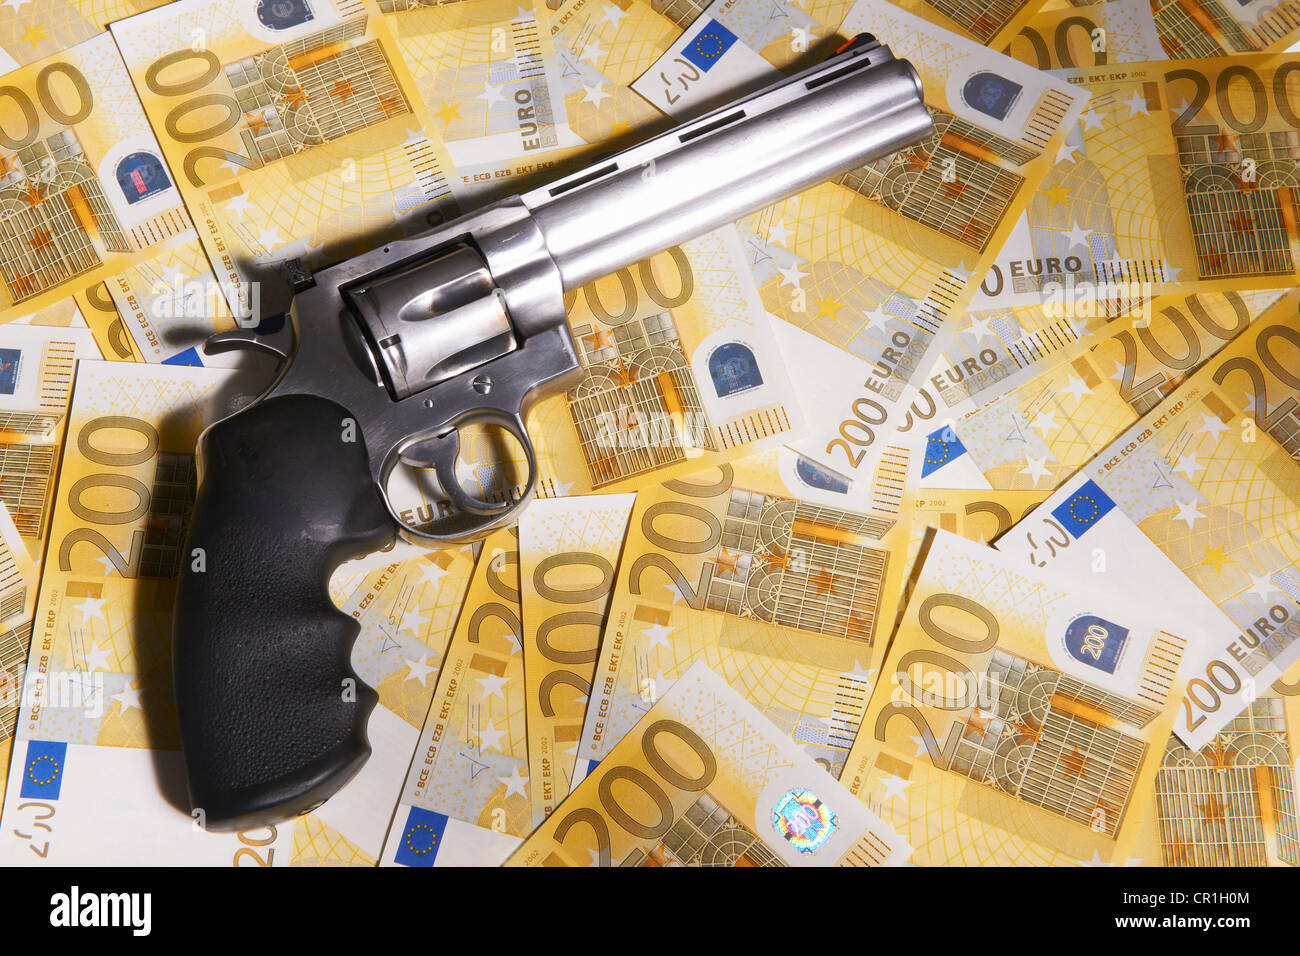 Handgun and 200 Euro bills - Stock Image